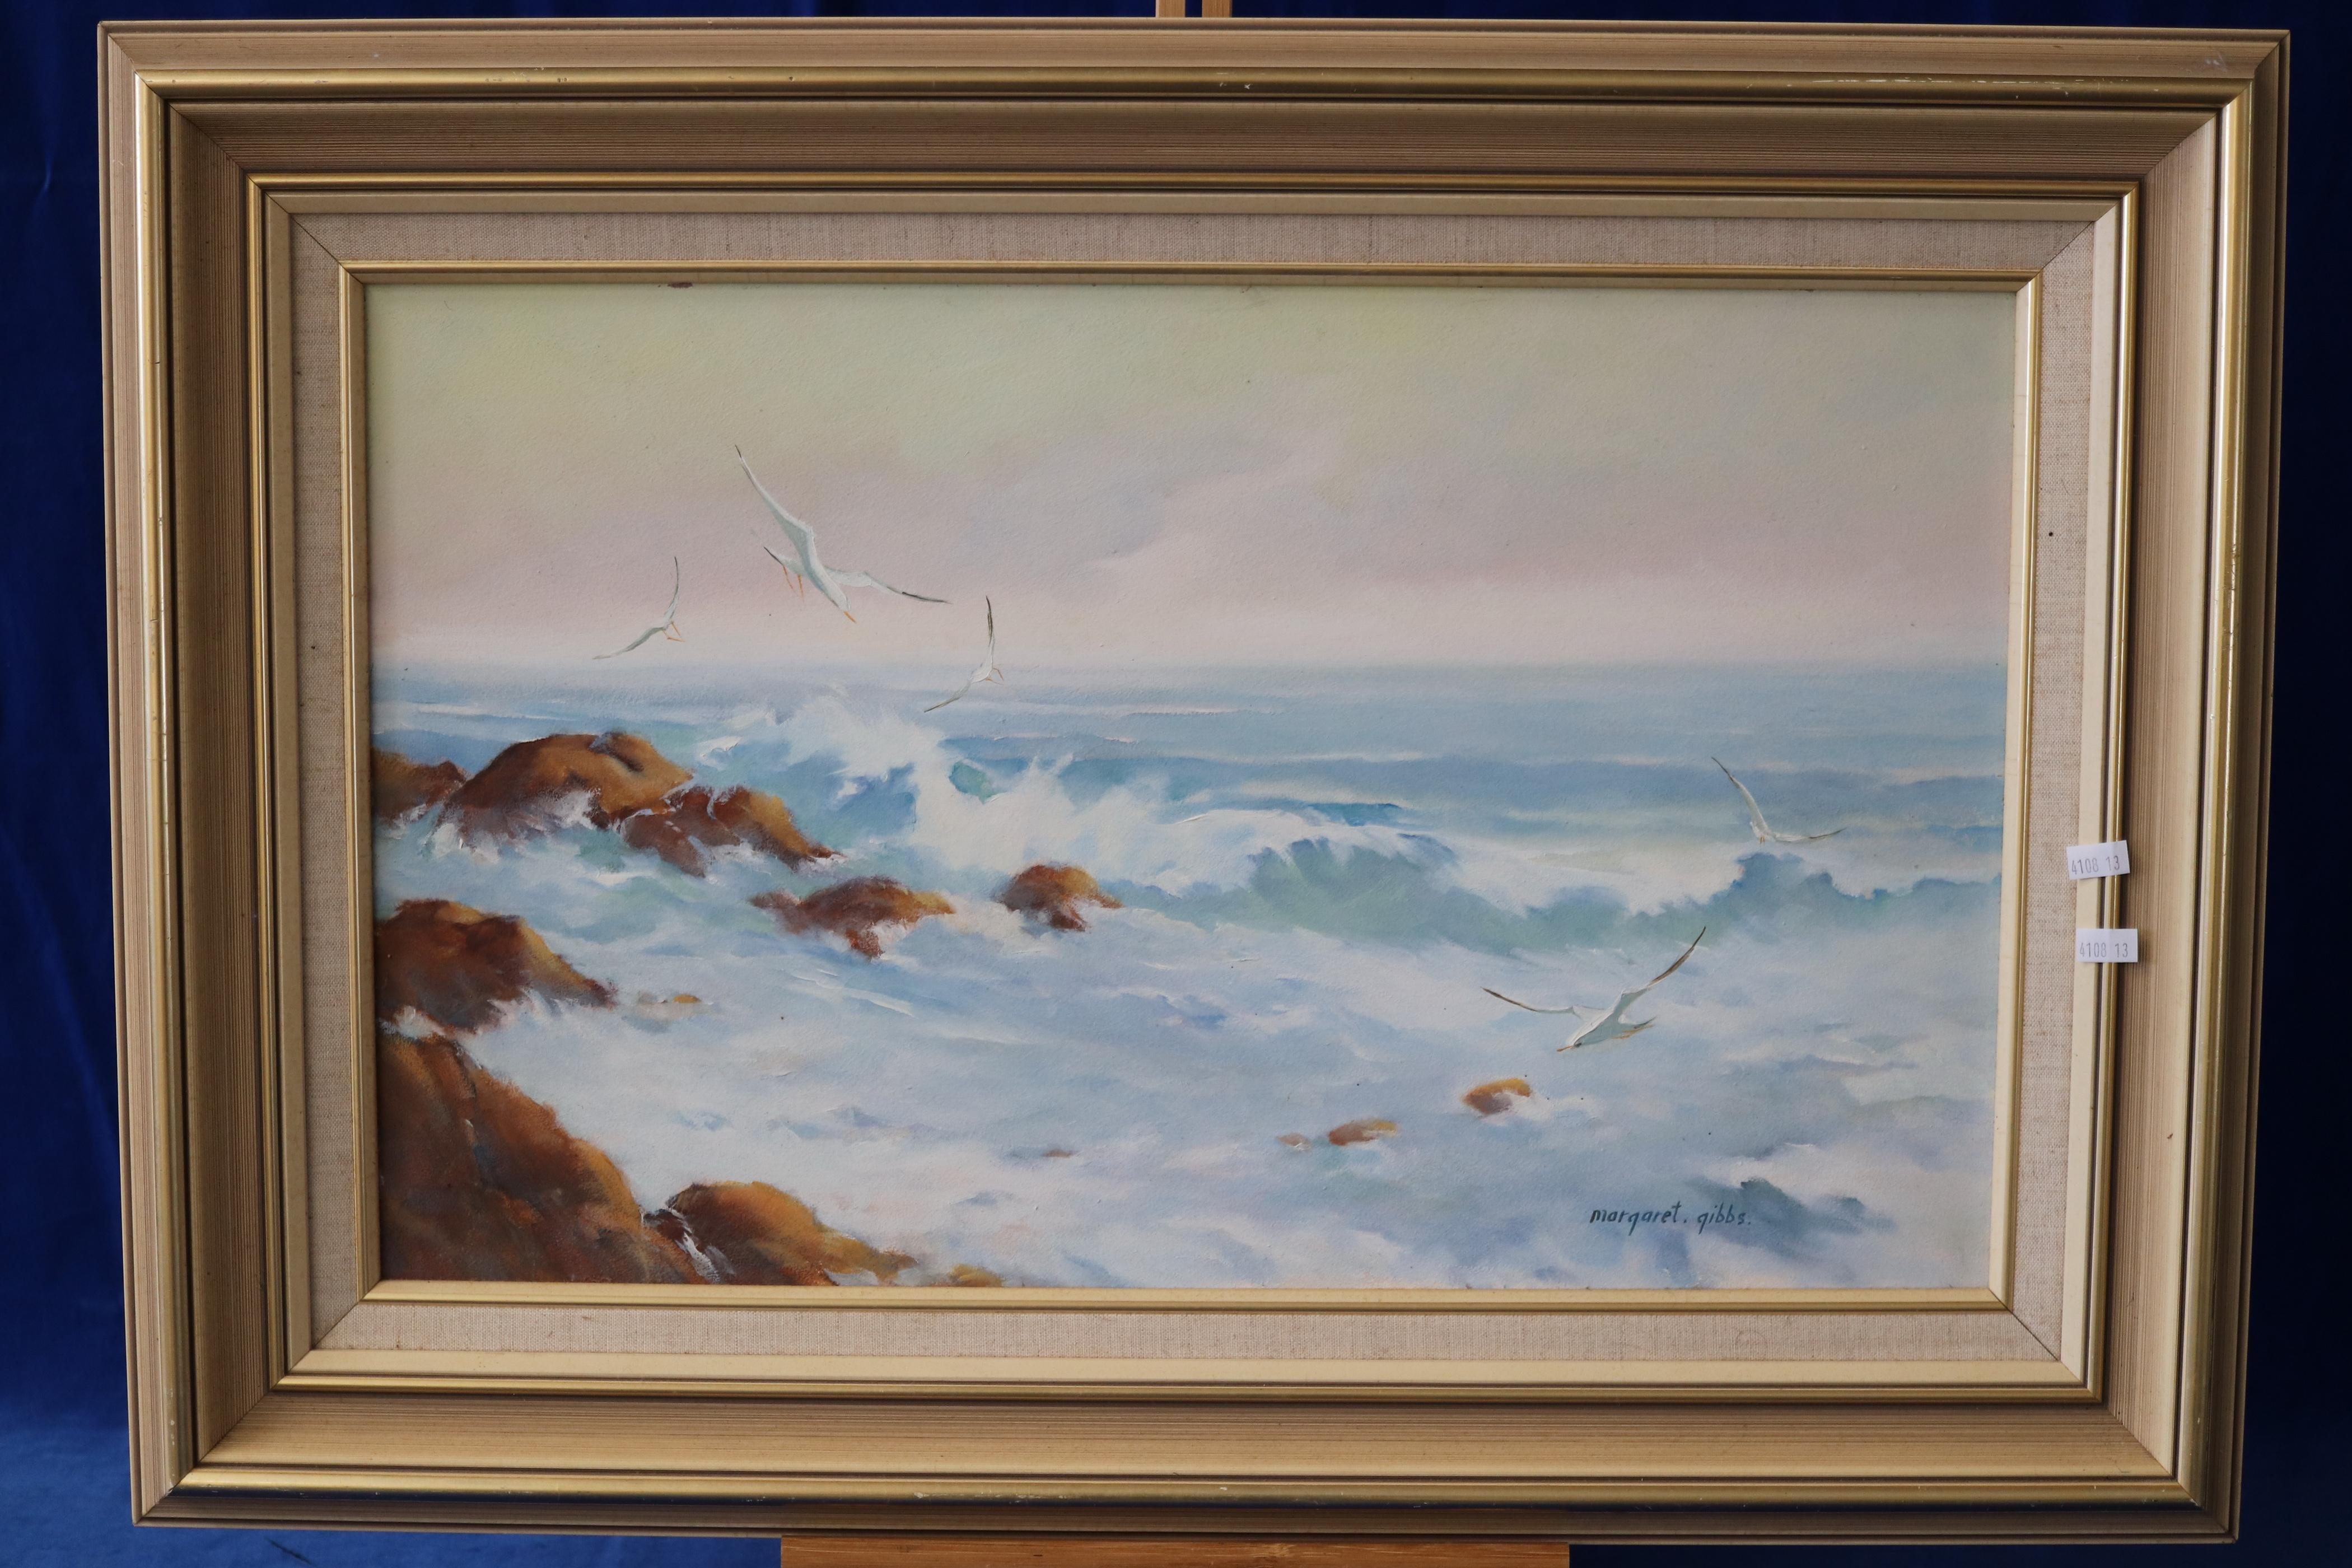 OIL PAINTING BY AUSTRALIAN ARTIST - MARGARET GIBBS - SOUNDS OF THE SEA - 59CM W X 38CMS